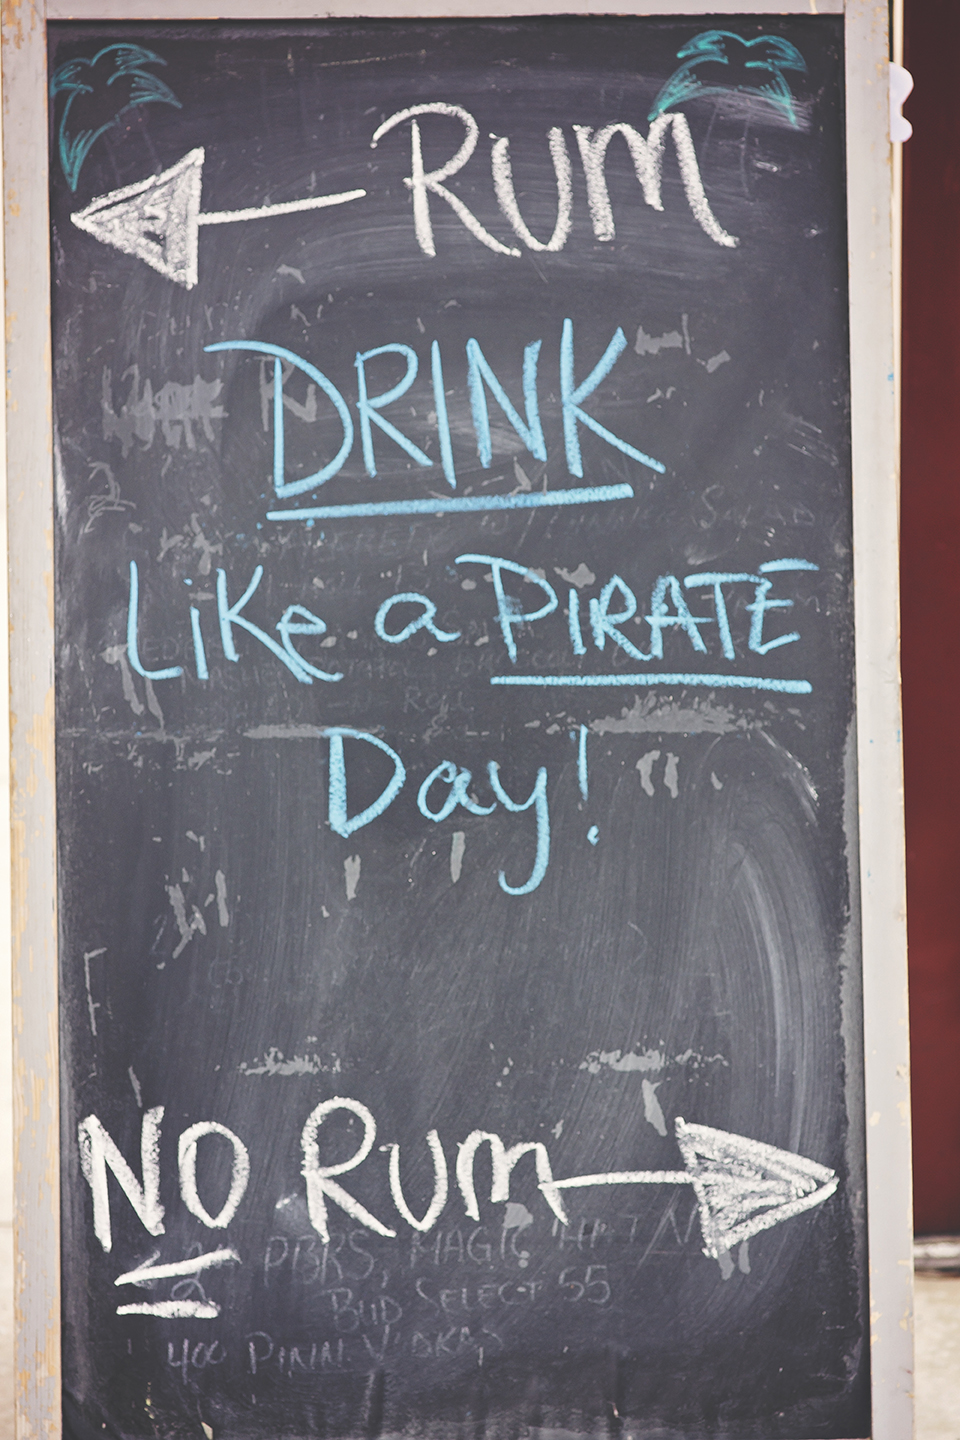 Drink like a pirate at the Lost Parrot